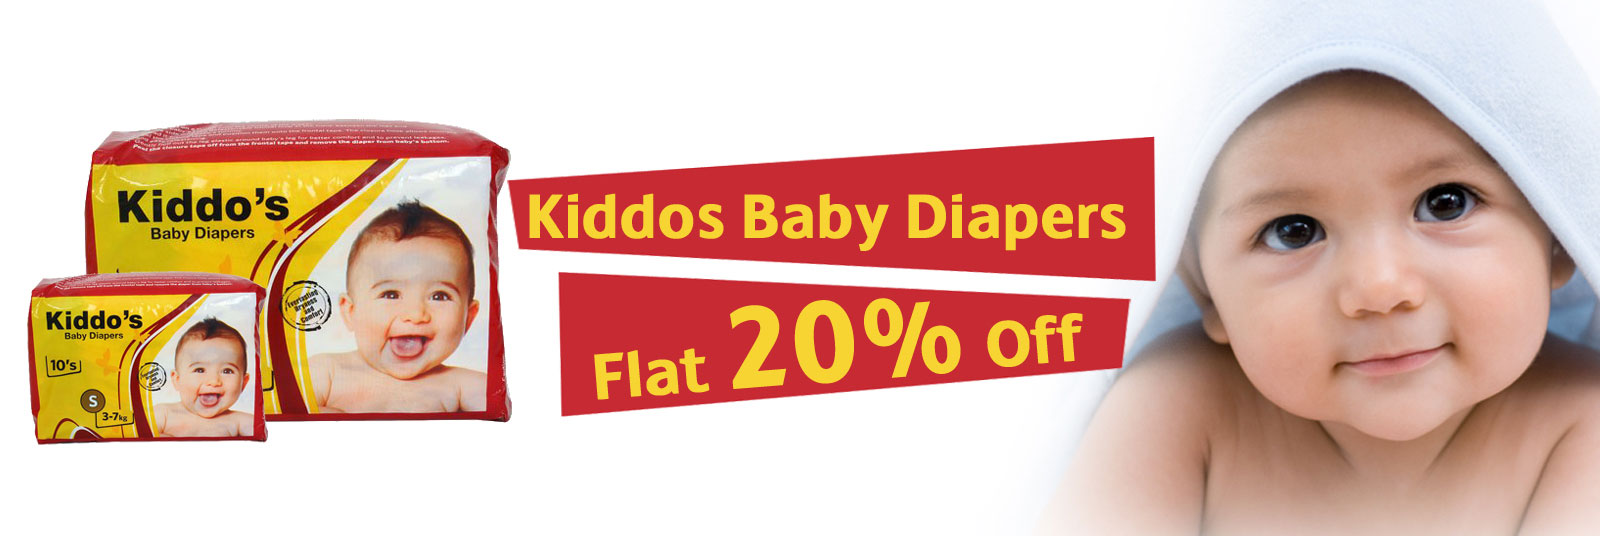 Kiddos Baby Diapers